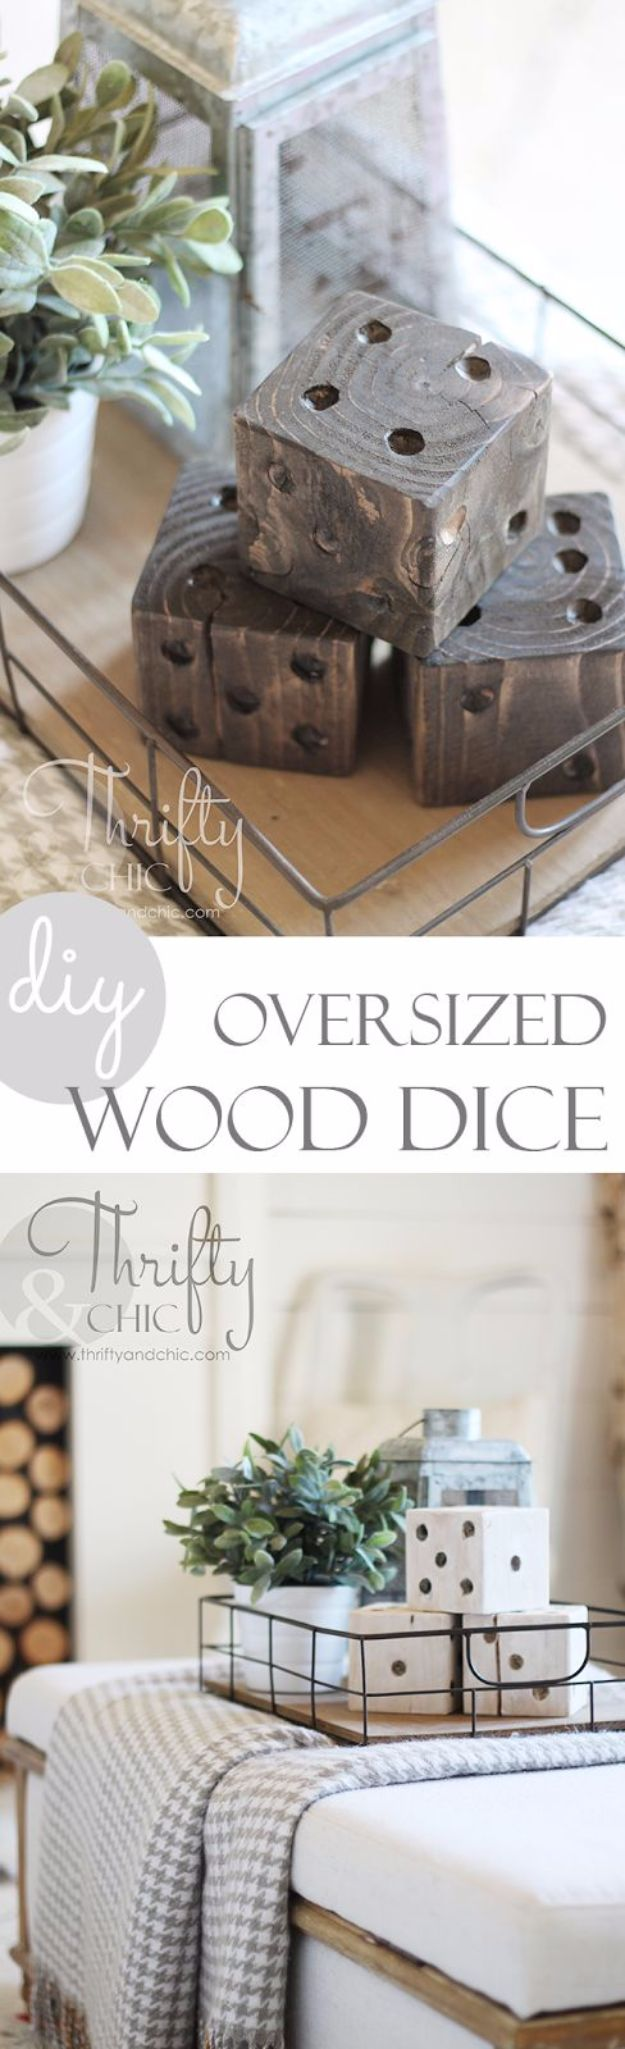 50 rustic farmhouse ideas to make and sell for Easy crafts to make money from home